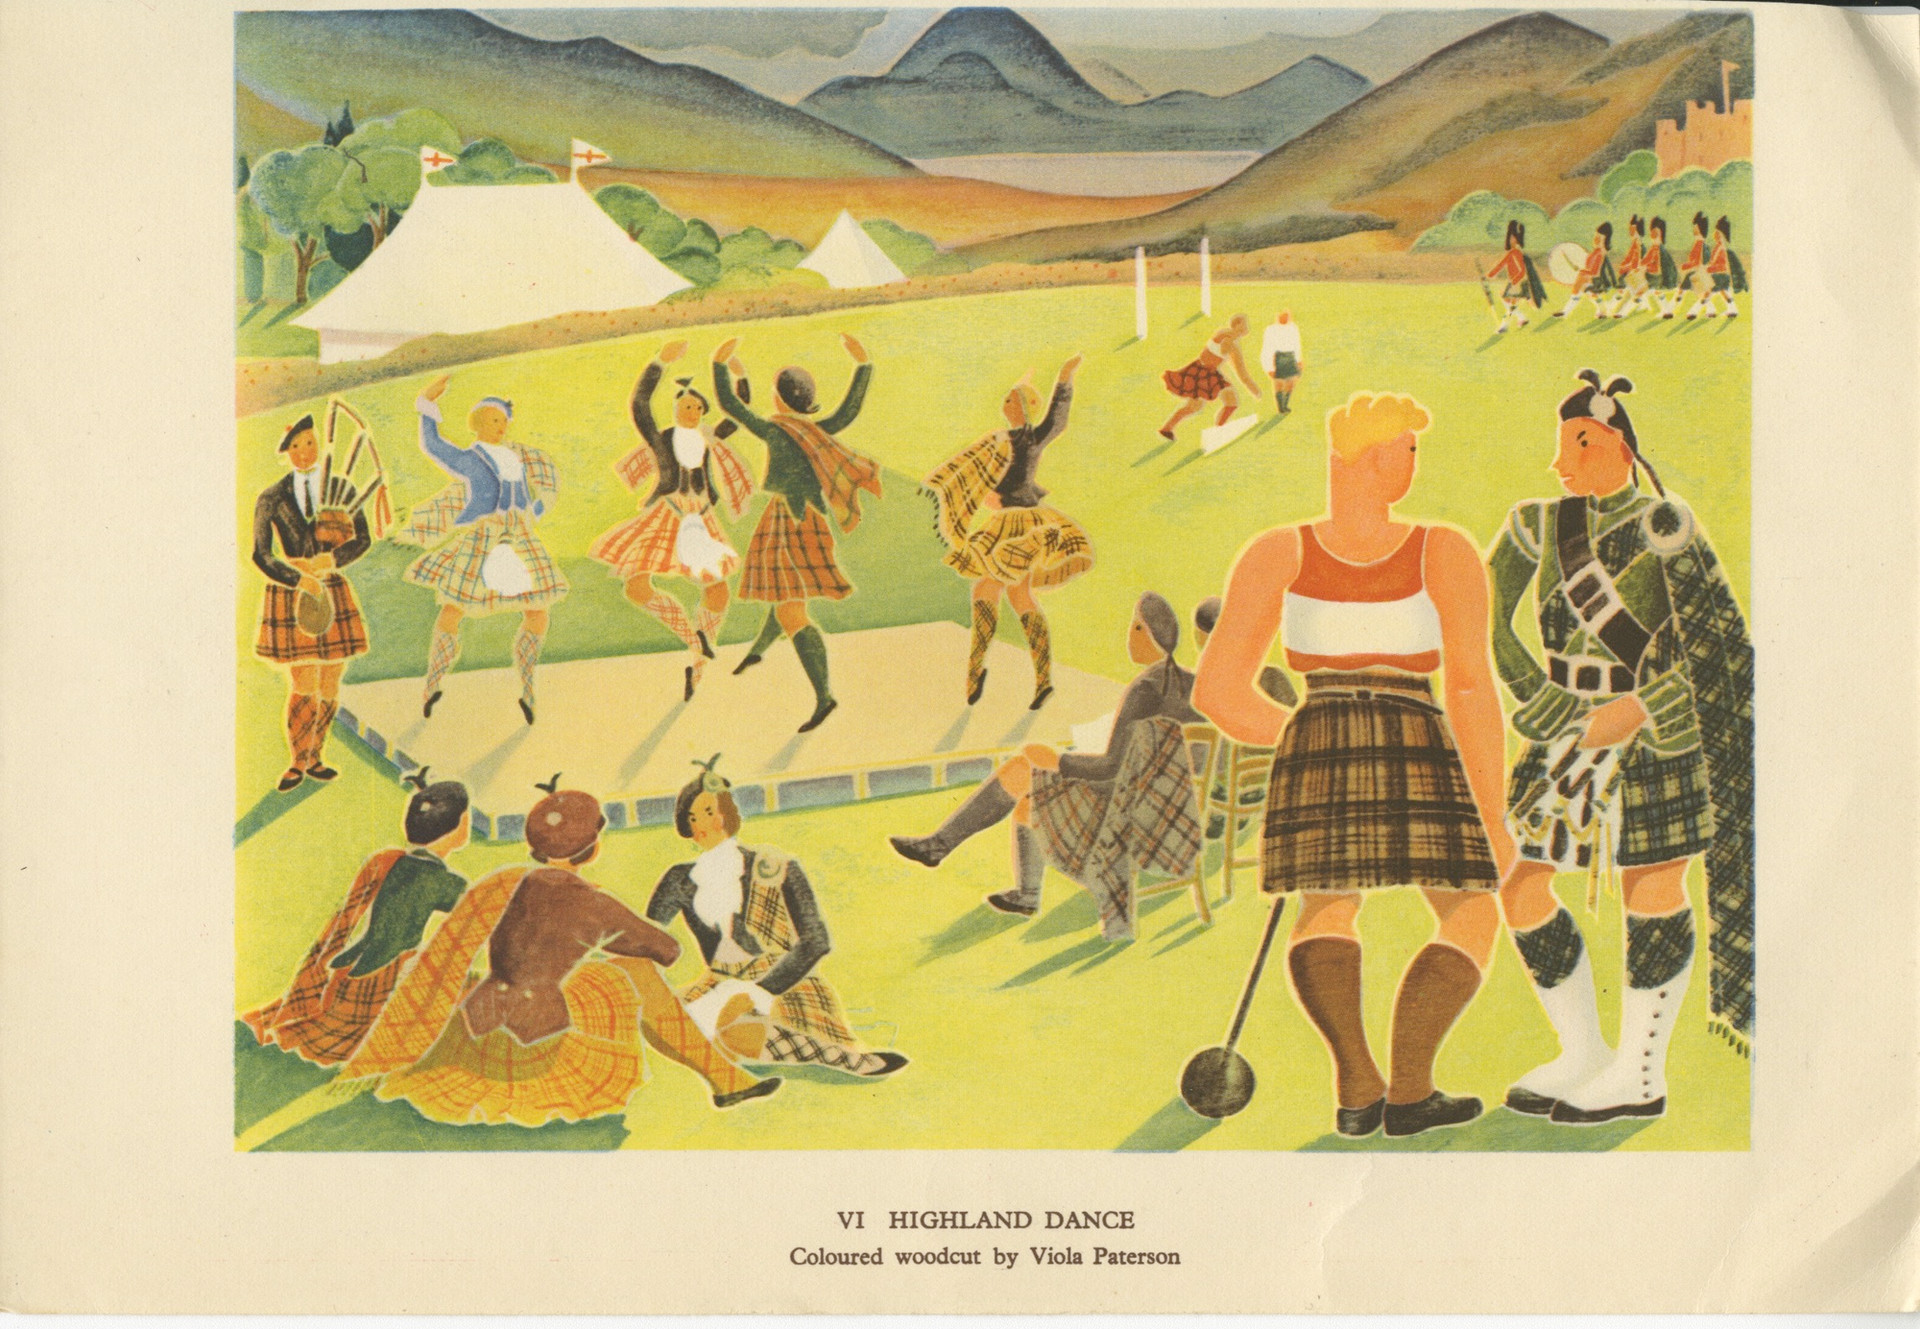 """""""Highland Dance"""" by Mary Viola Paterson (1899-1981)  Born in Helensburgh, Scotland, Paterson was from a leading artistic family - her father was the architect Alexander Nisbet Paterson and her mother Margaret was a painter and embroiderer. The artist James Paterson, one of the Glasgow Boys, was an uncle of Viola Paterson as was William Paterson who ran a Bond Street art gallery.    Paterson was a prolific painter and printmaker, producing colour woodcut prints in limited editions of six or twelve, often combining printed areas with watercolour additions. She developed a technique, which she called Wood Types, for engraving lines onto a wood block to separate different painted areas of colour."""